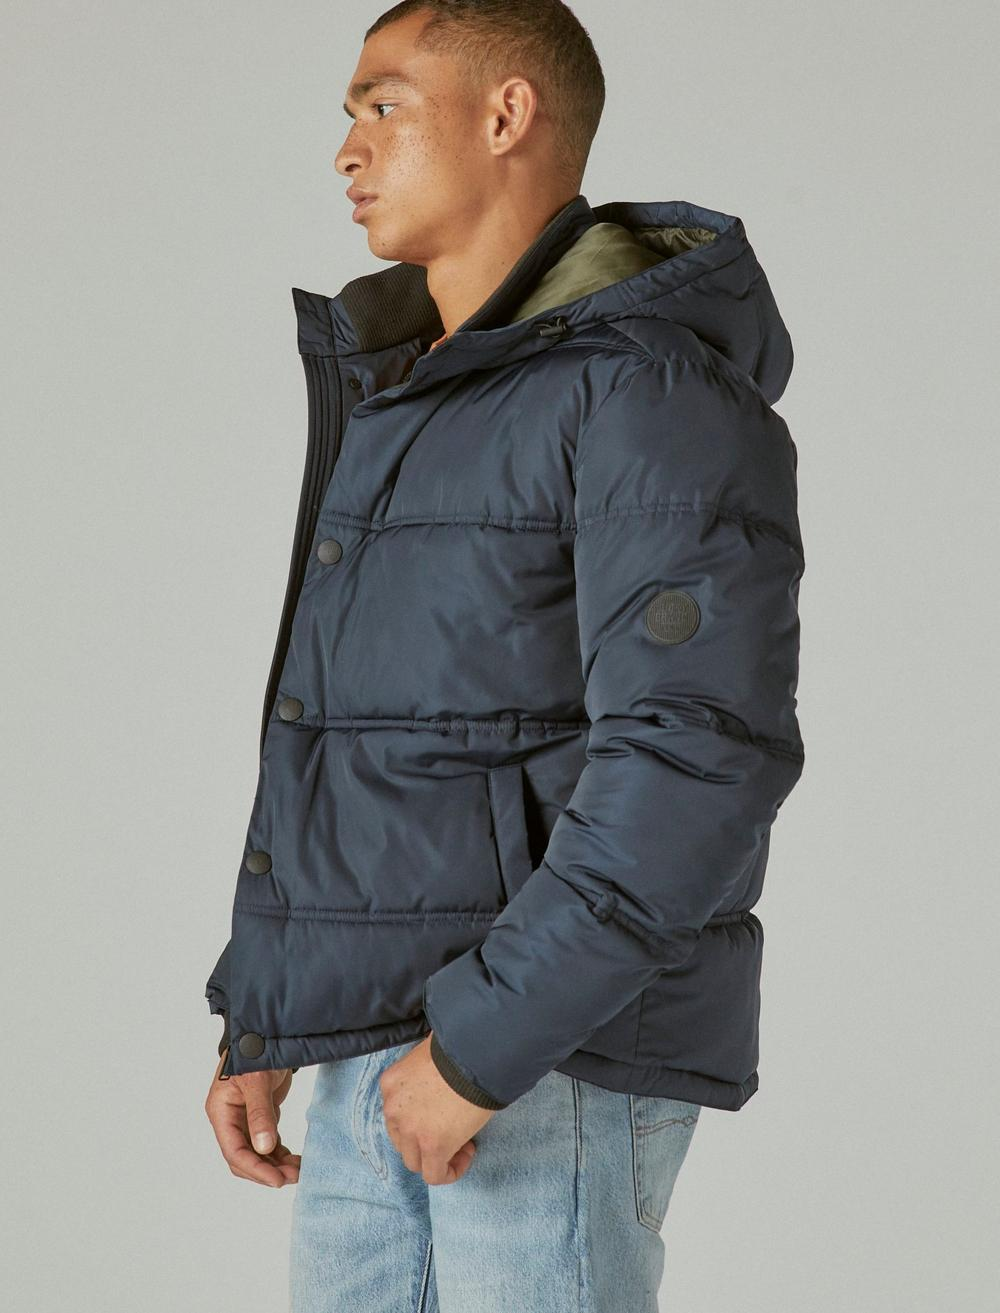 POLY TWILL HOODED HIPSTER JACKET, image 3